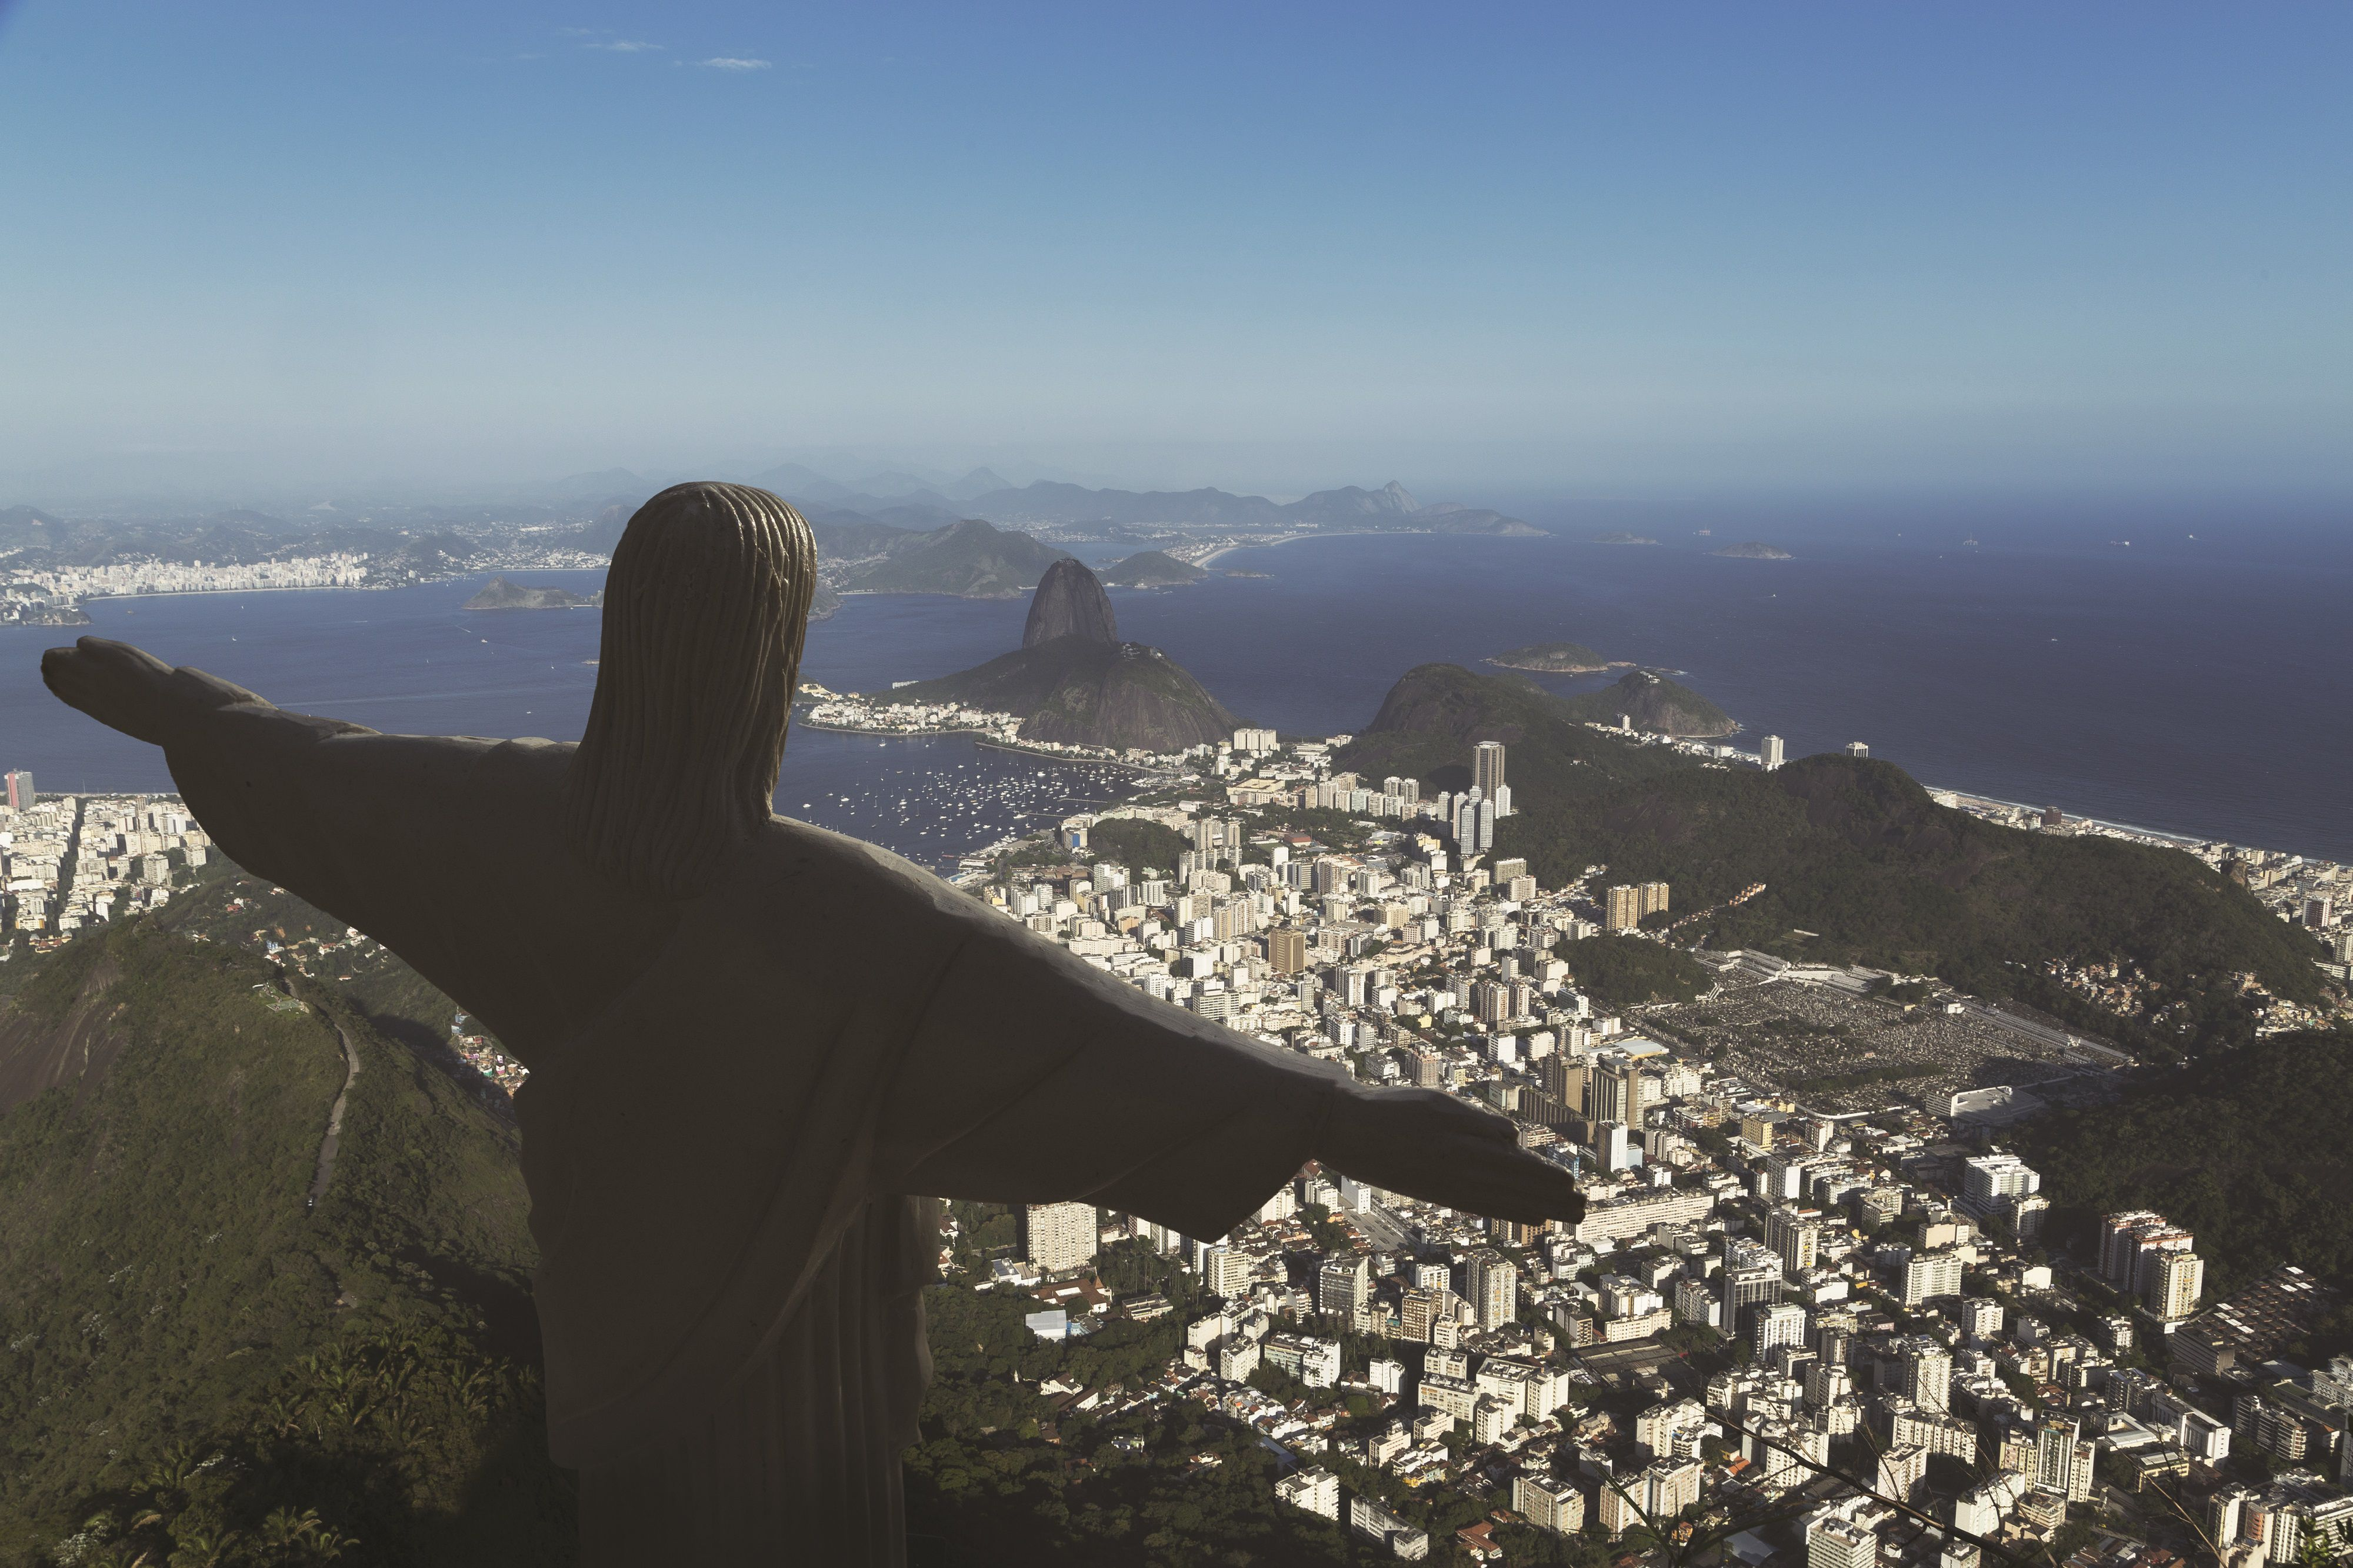 Christ the redeemer statue and the coastline